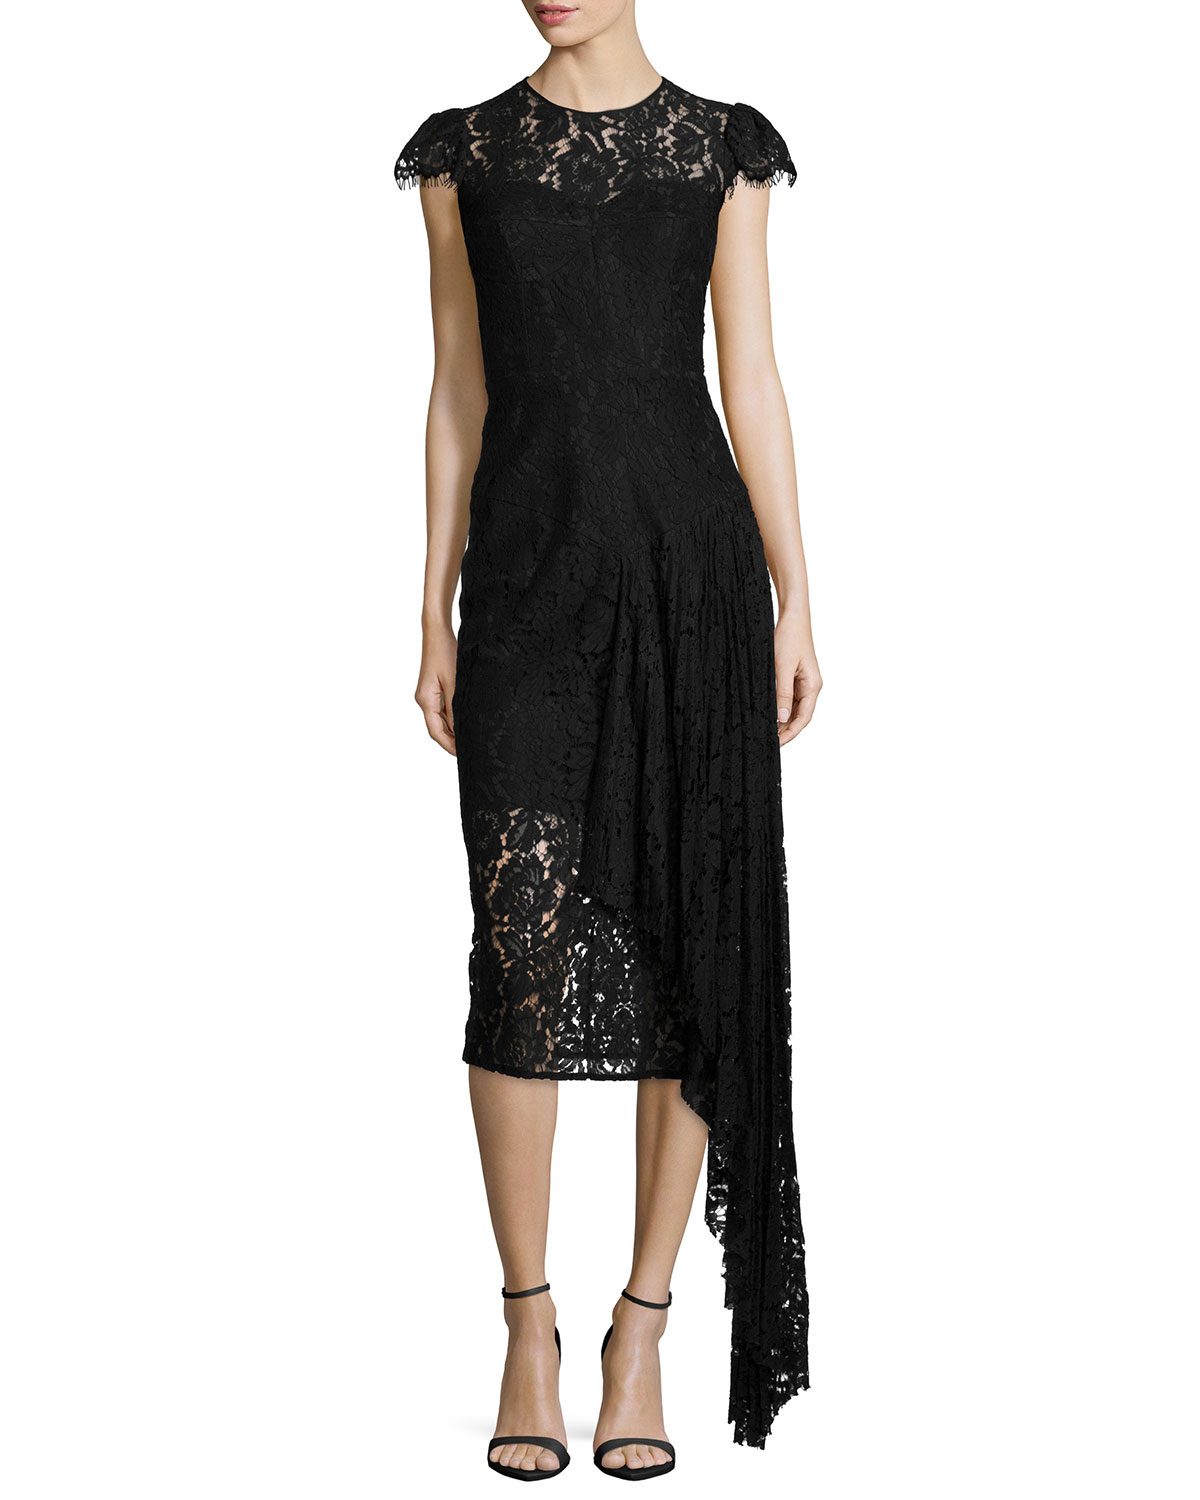 Black dress neiman marcus - Gallery Previously Sold At Neiman Marcus Bergdorf Goodman Women S Black Lace Cocktail Dresses